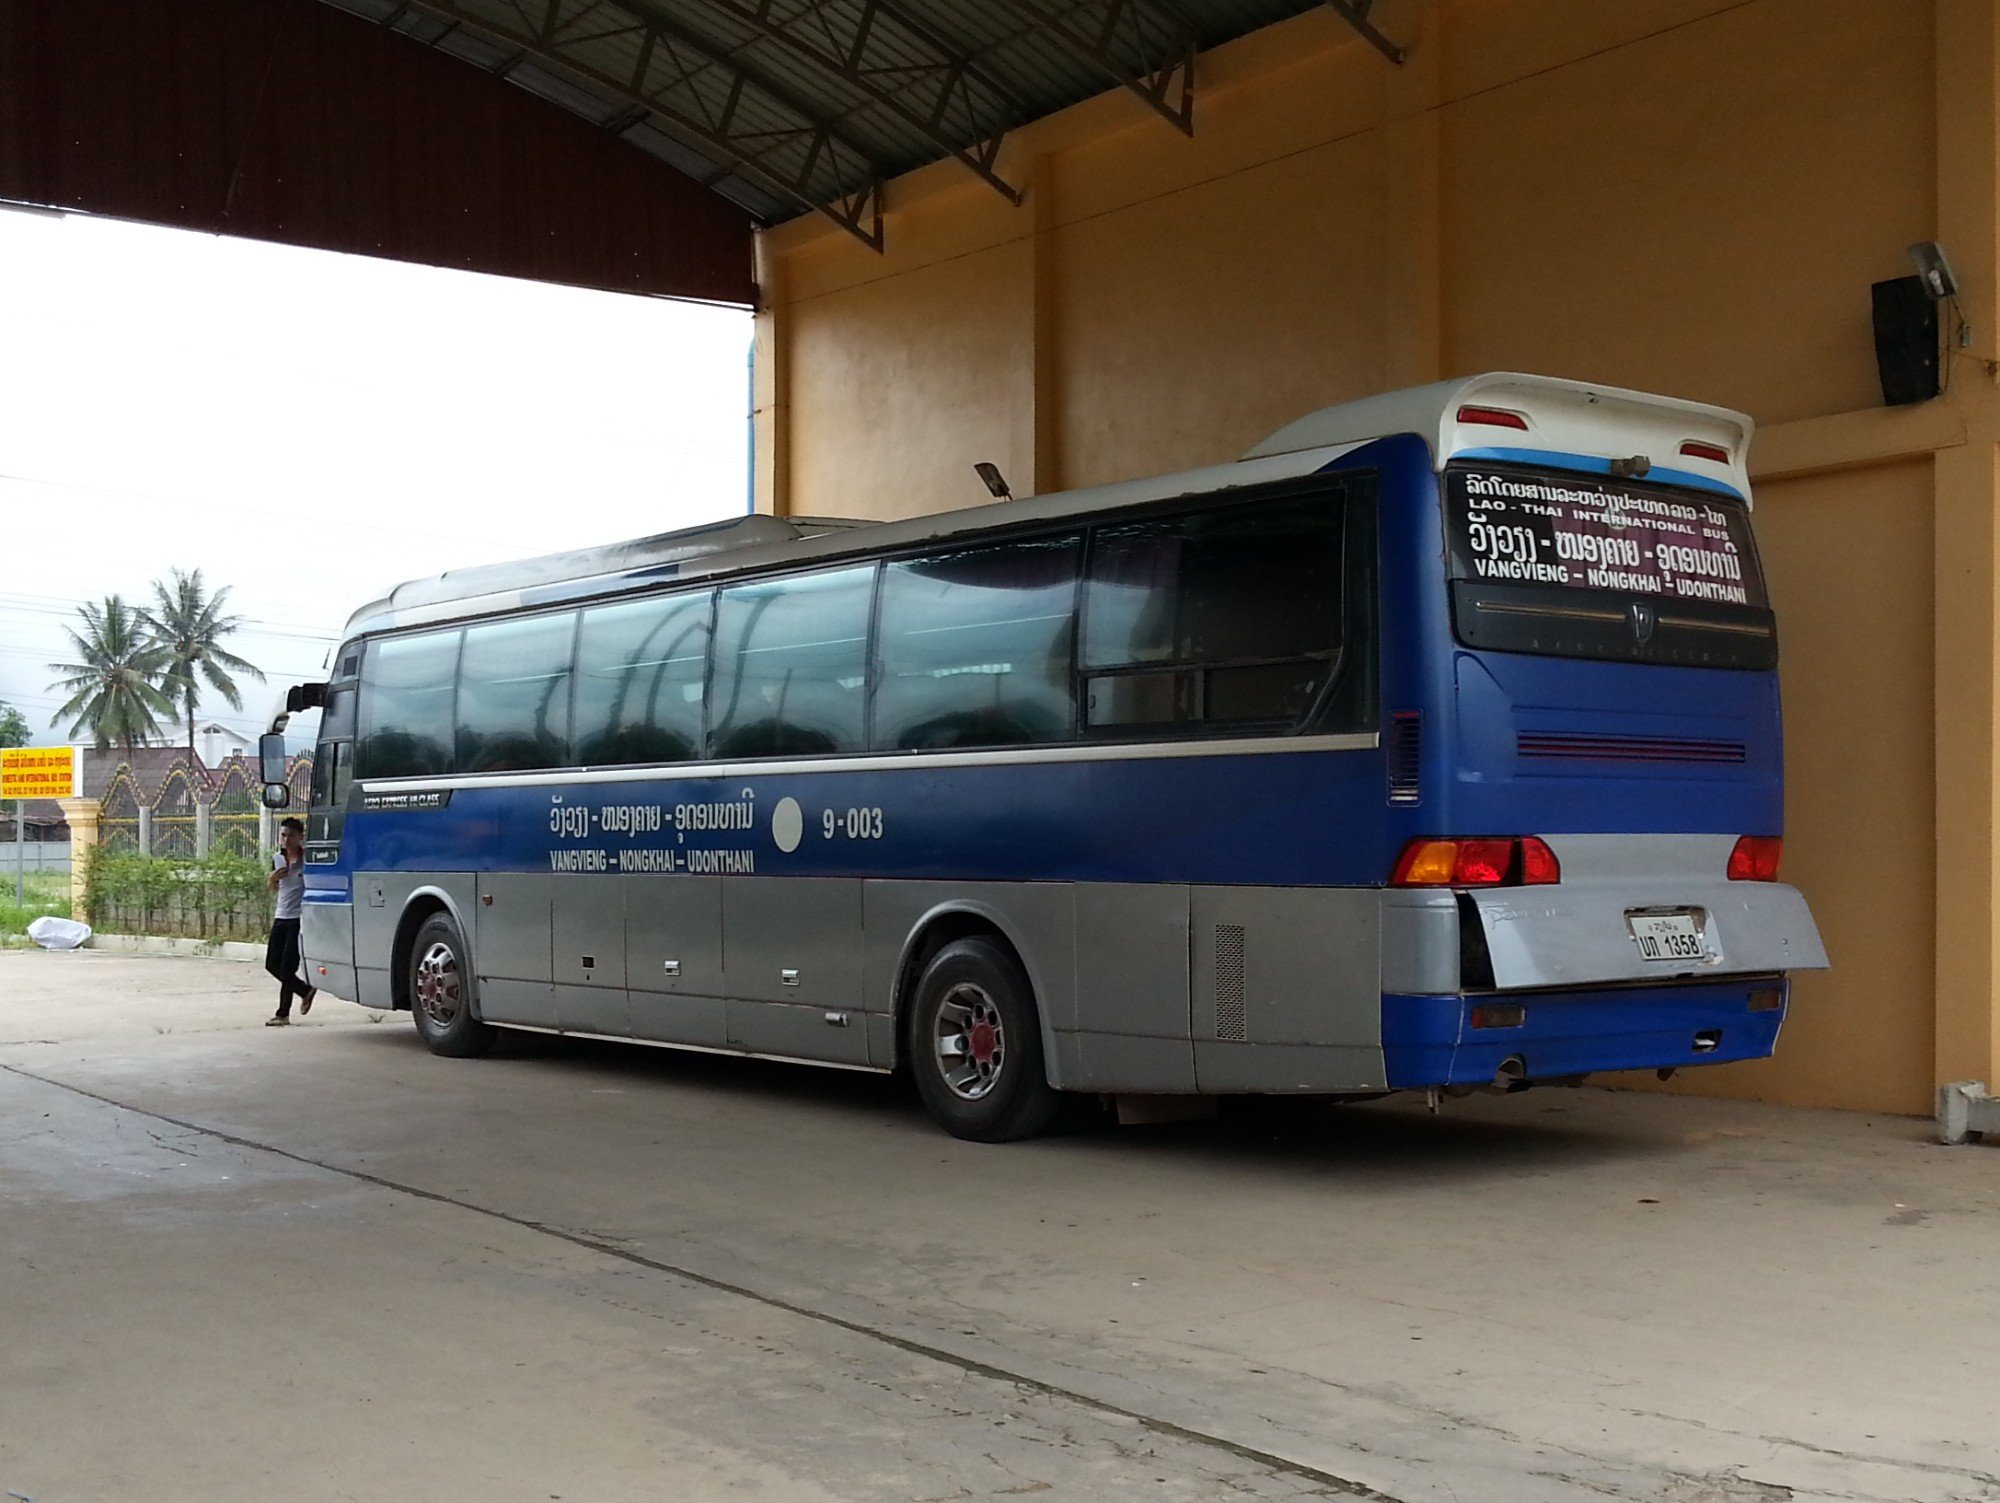 Bus to Udon Thani at Vang Vieng South Bus Terminal